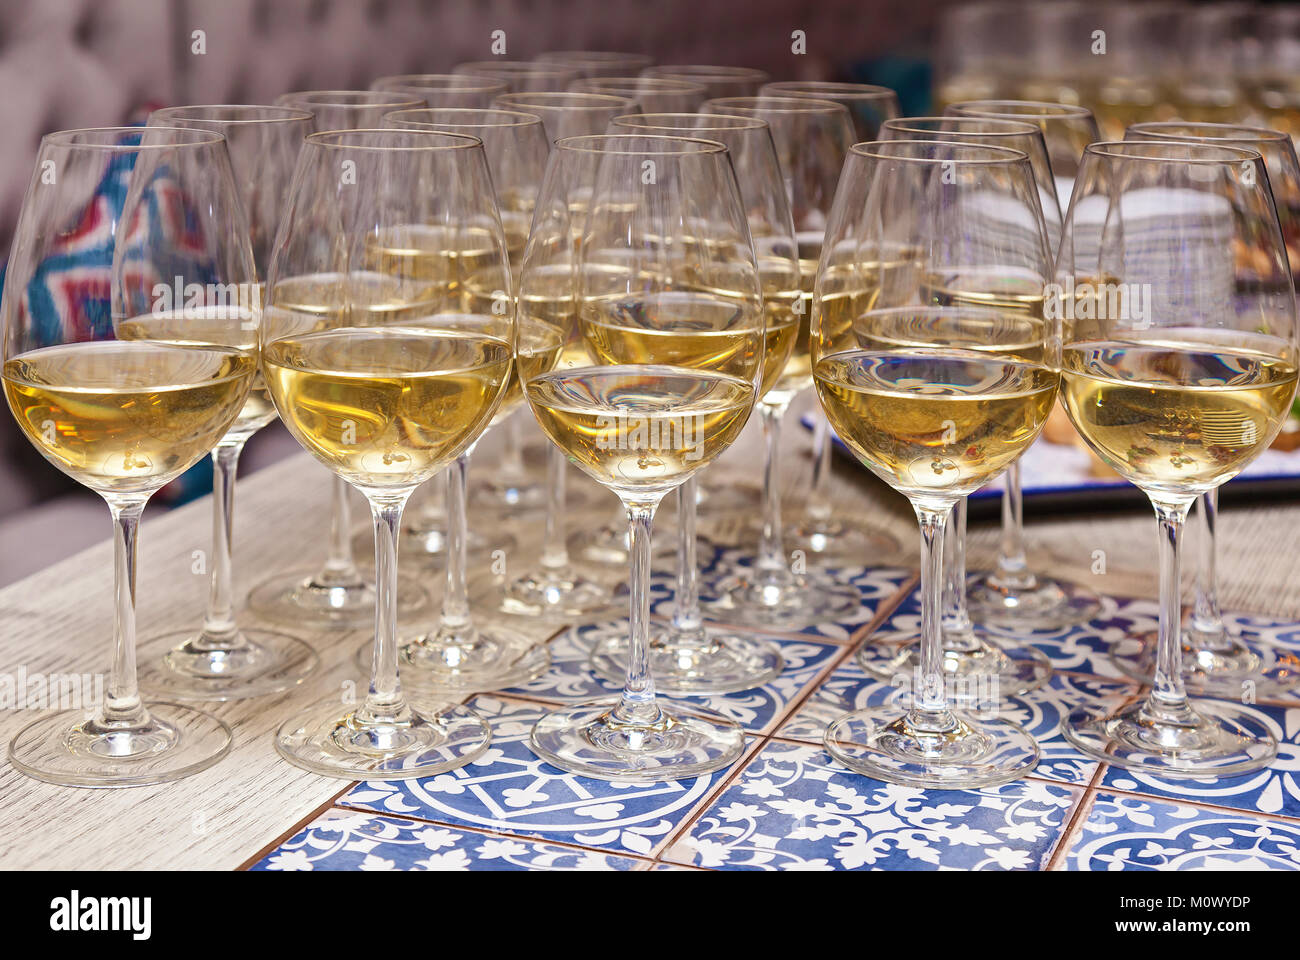 Glasses of champagne on the table. - Stock Image